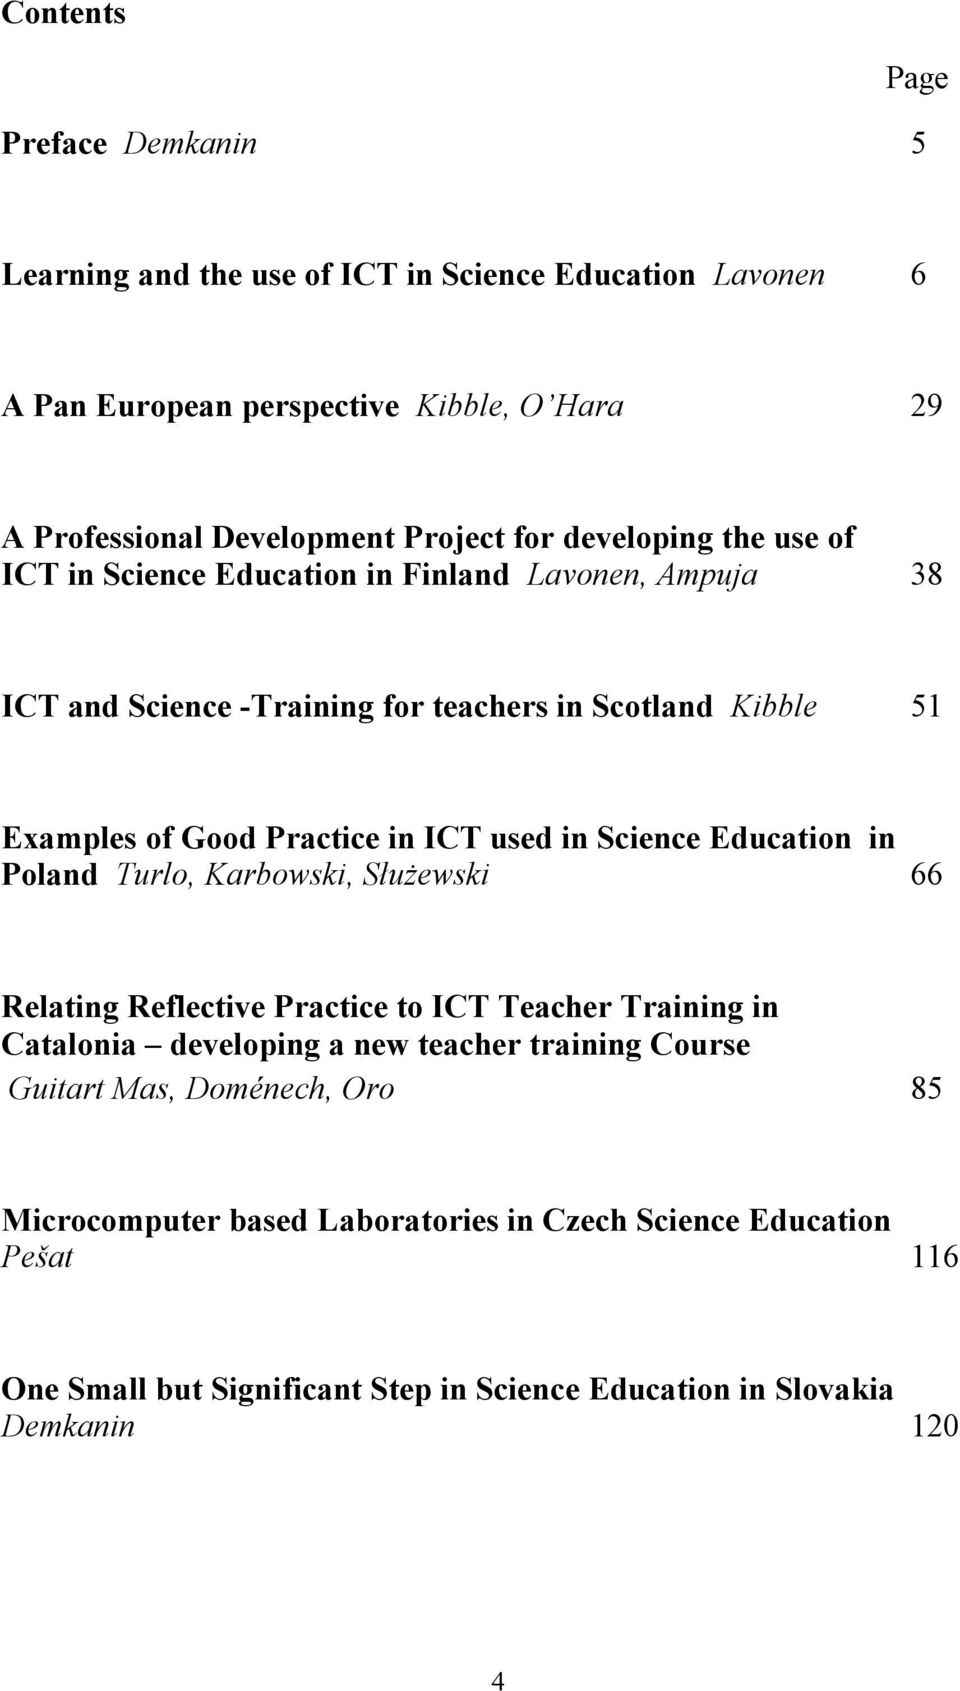 used in Science Education in Poland Turlo, Karbowski, Służewski 66 Relating Reflective Practice to ICT Teacher Training in Catalonia developing a new teacher training Course